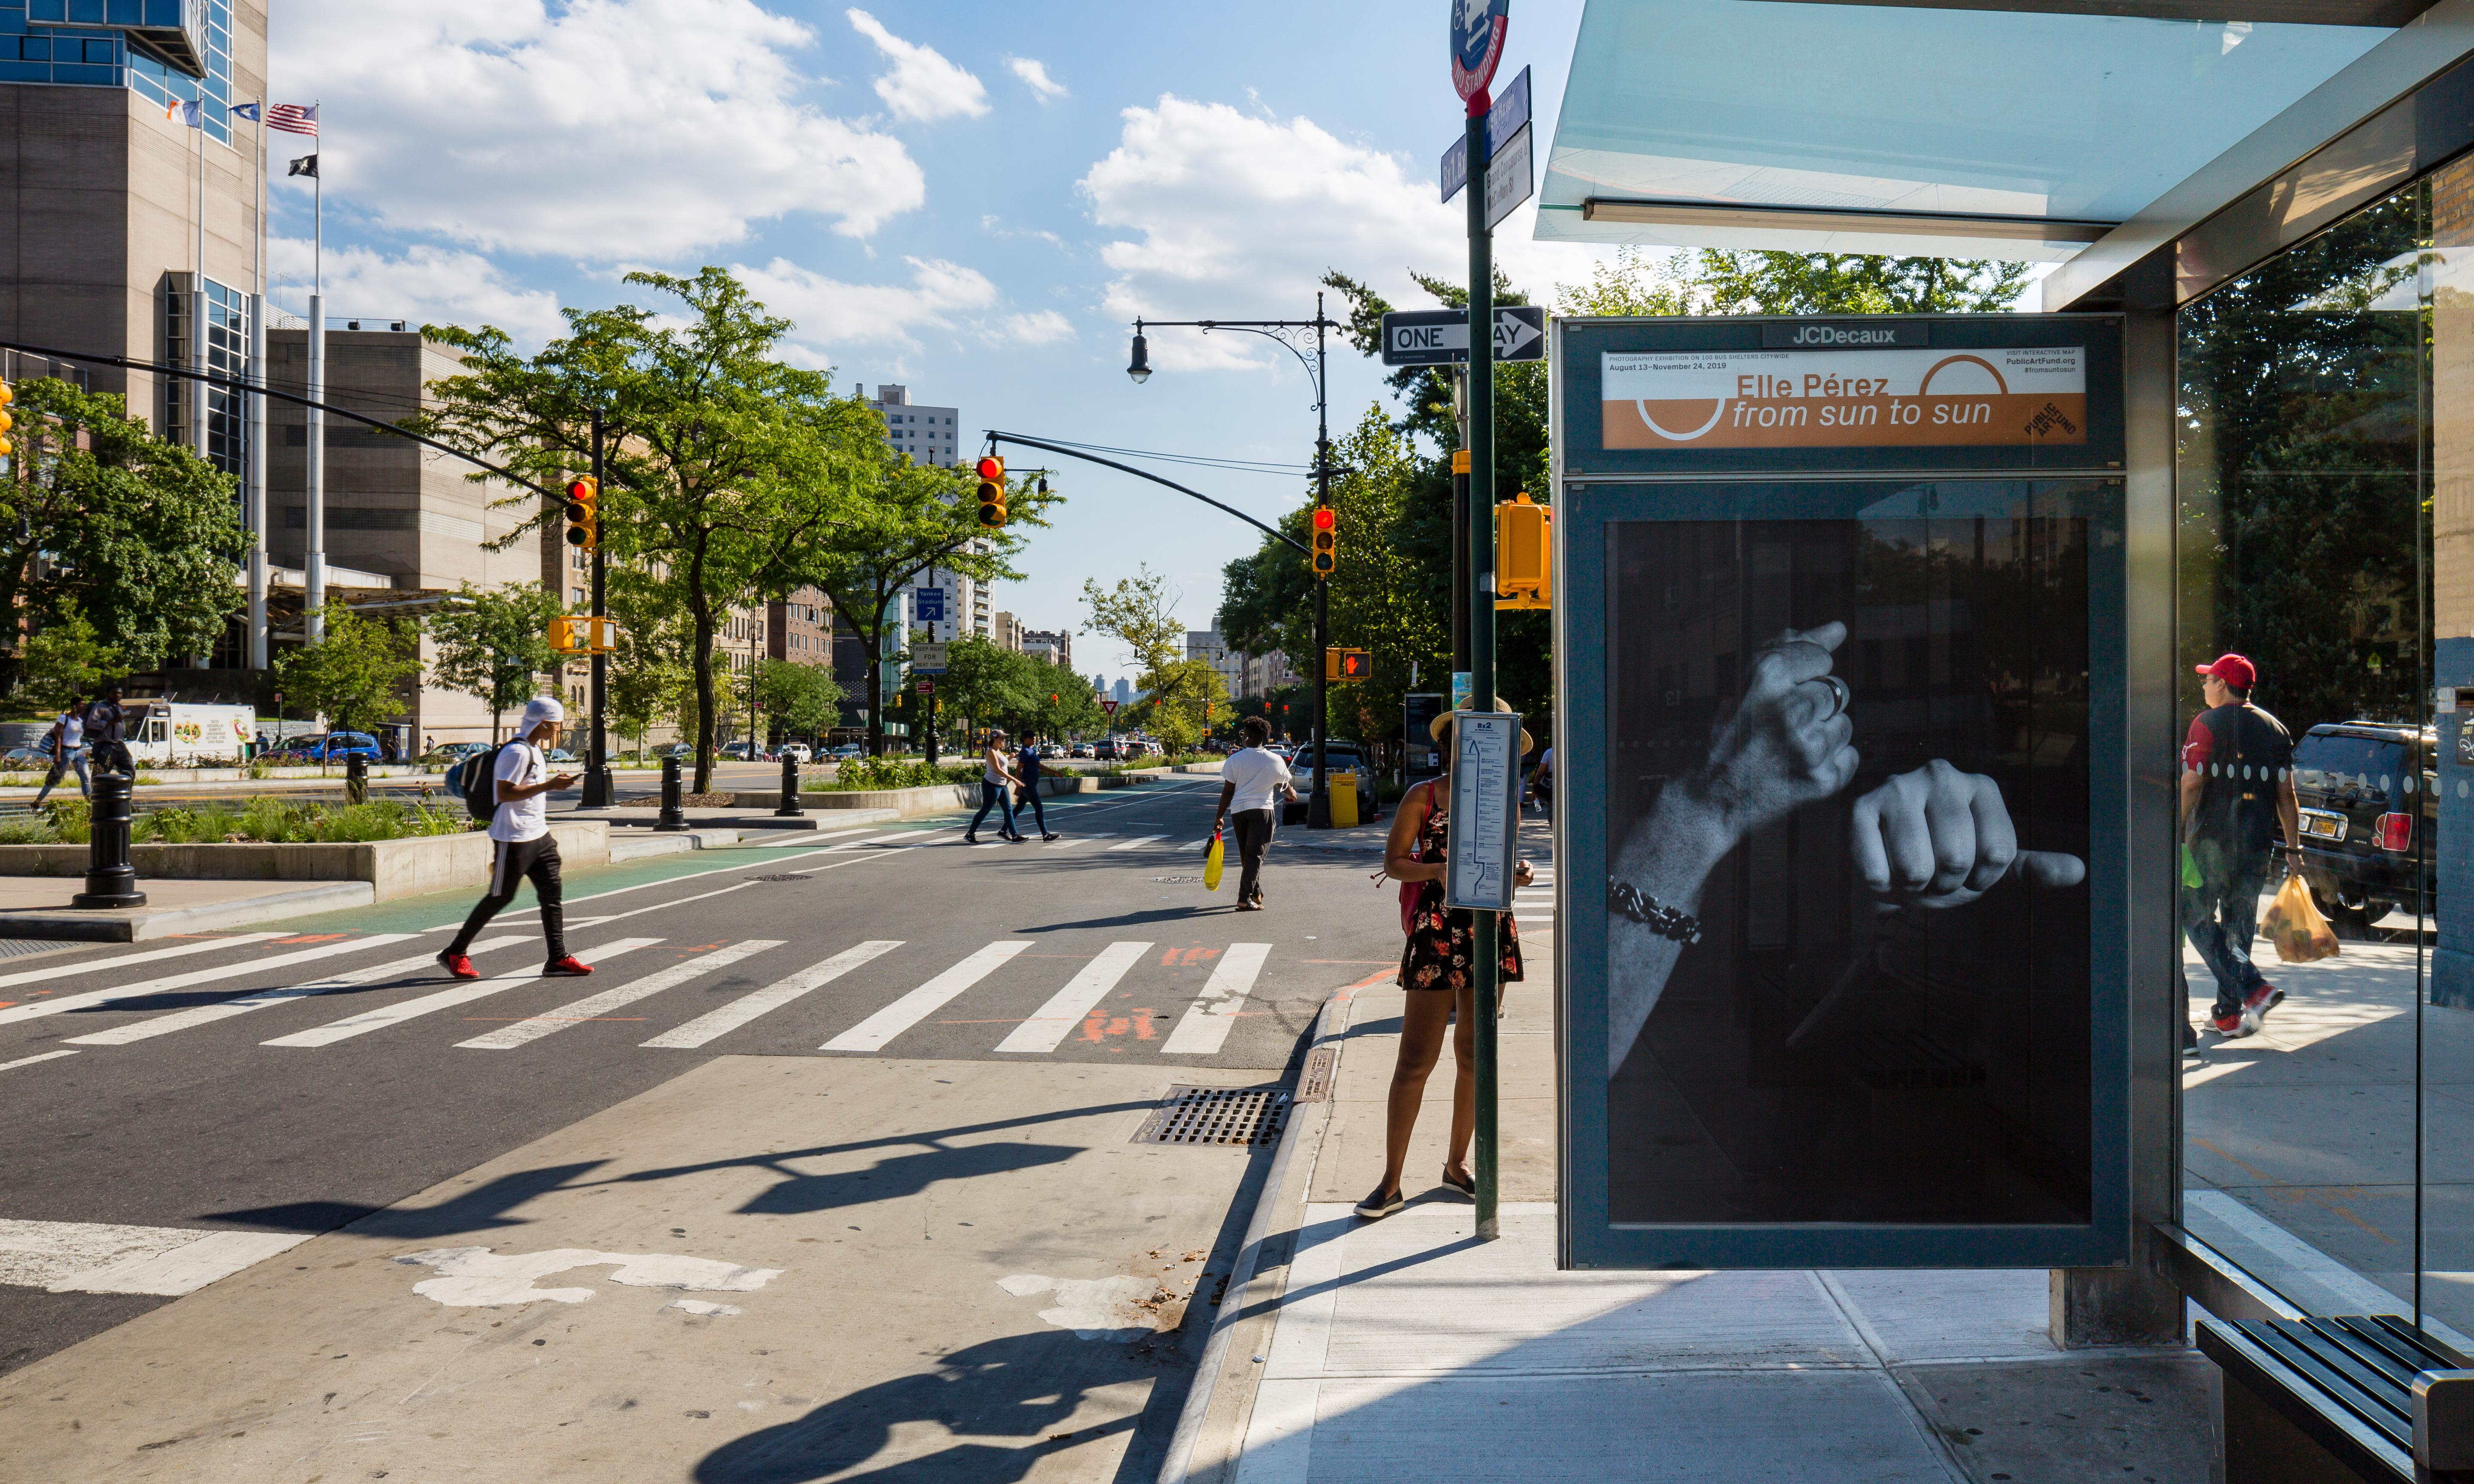 From Sun to Sun: the photo series livening up New York City bus shelters